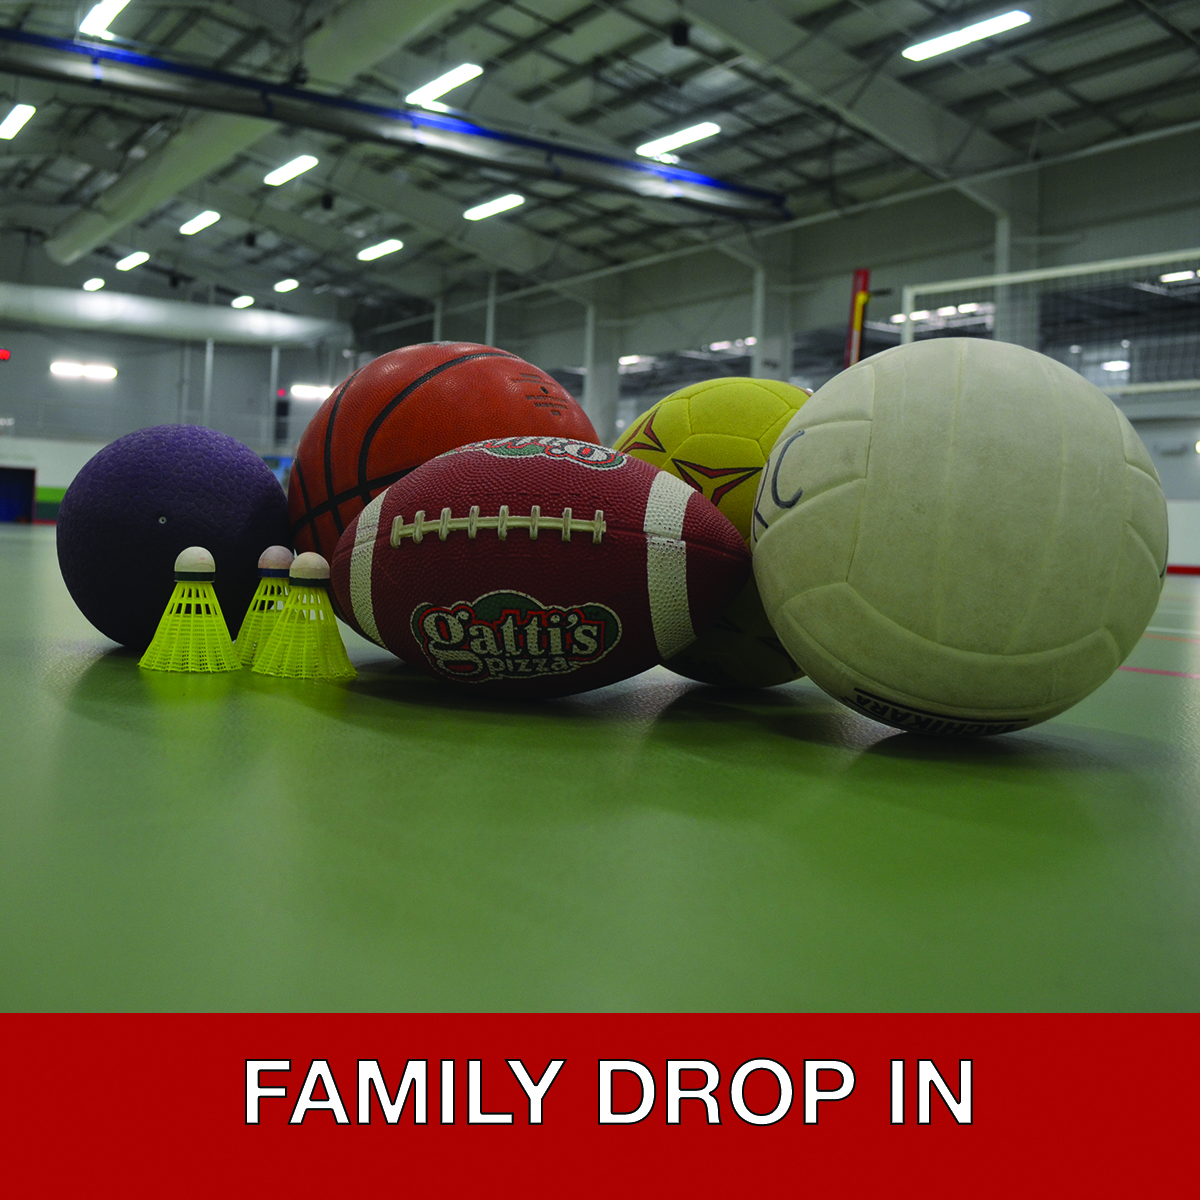 Family Drop In